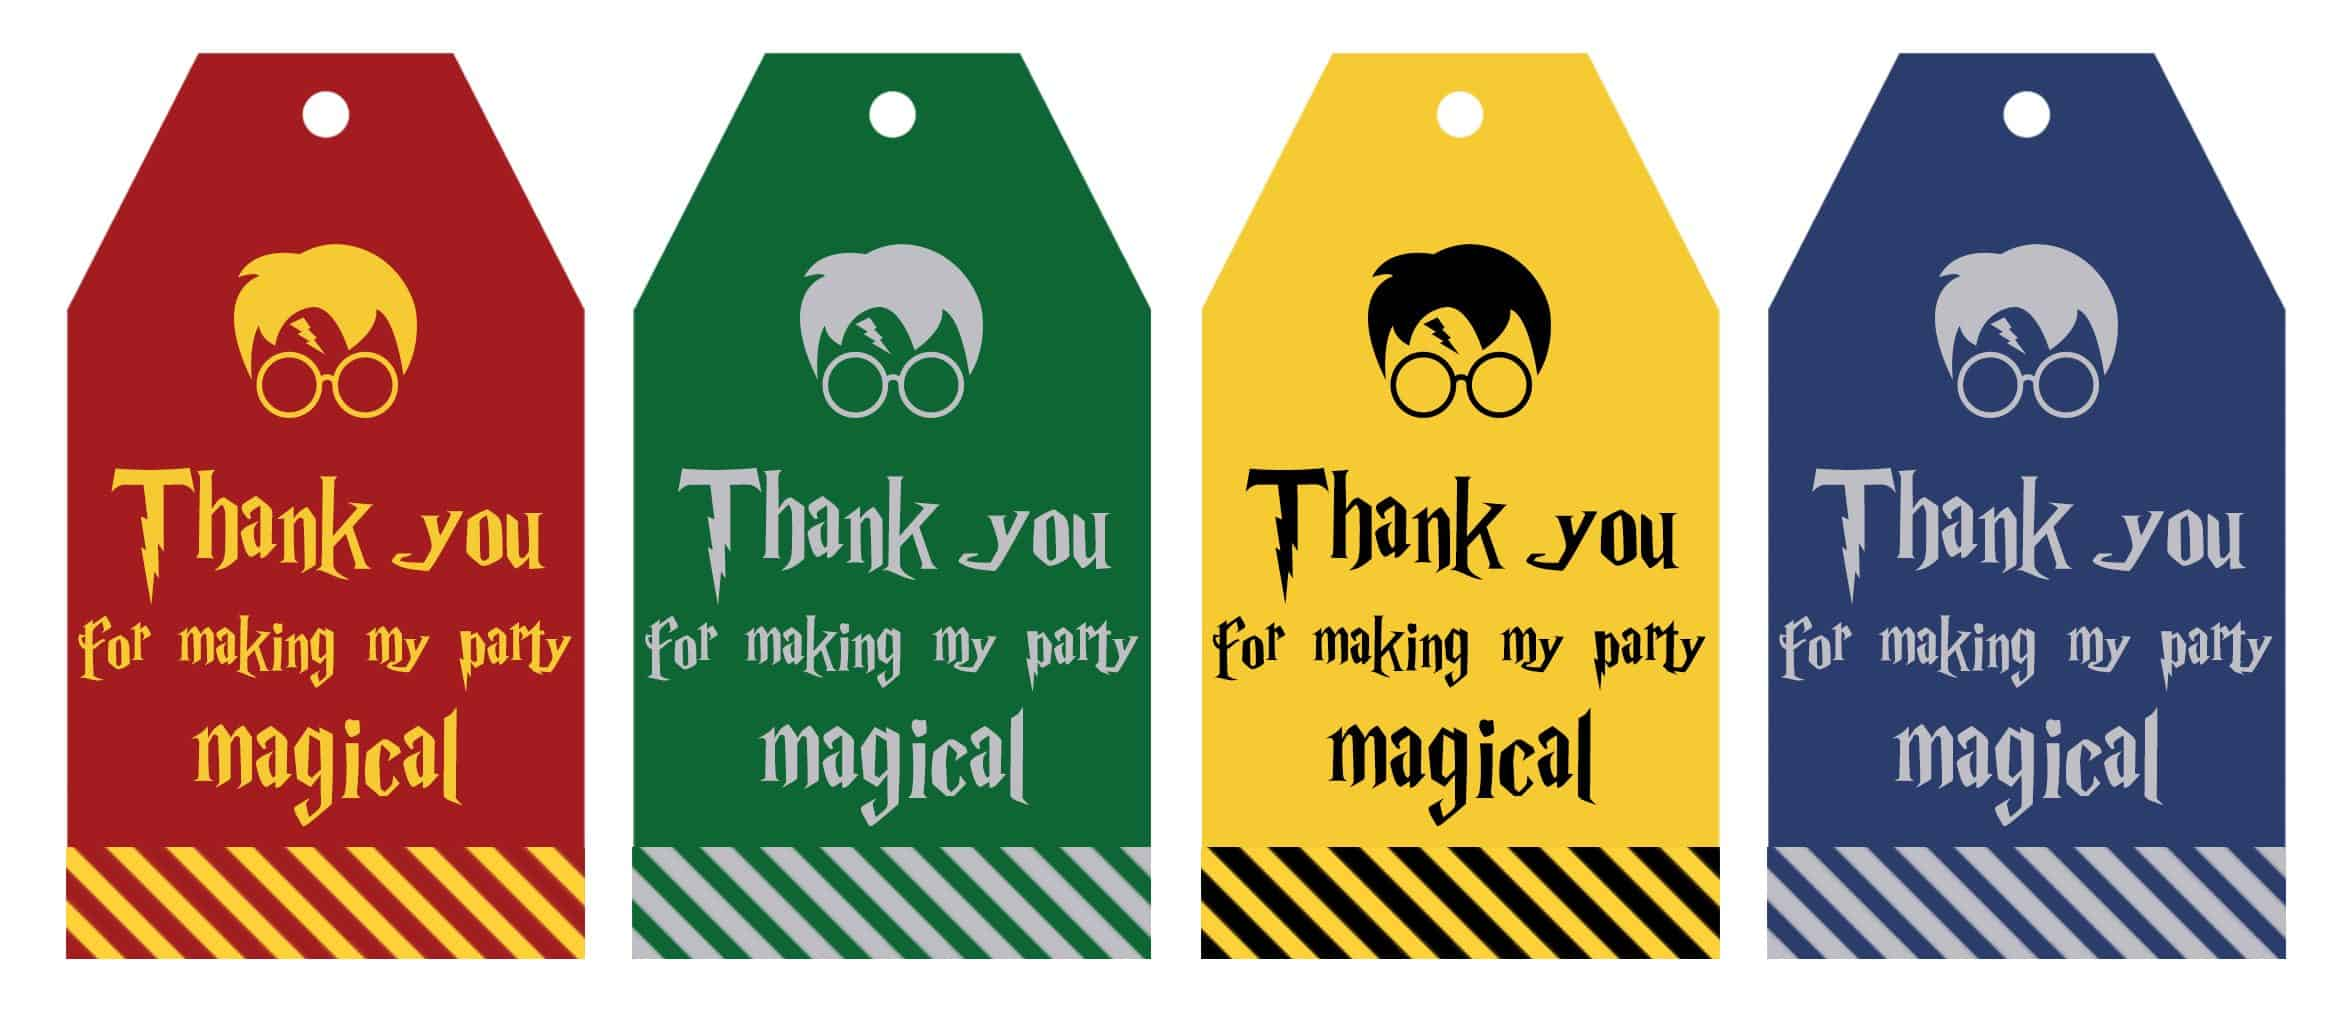 photo regarding Thank You Gift Tags Printable called Free of charge Printable Harry Potter Social gathering Want Present Tags - Beautiful